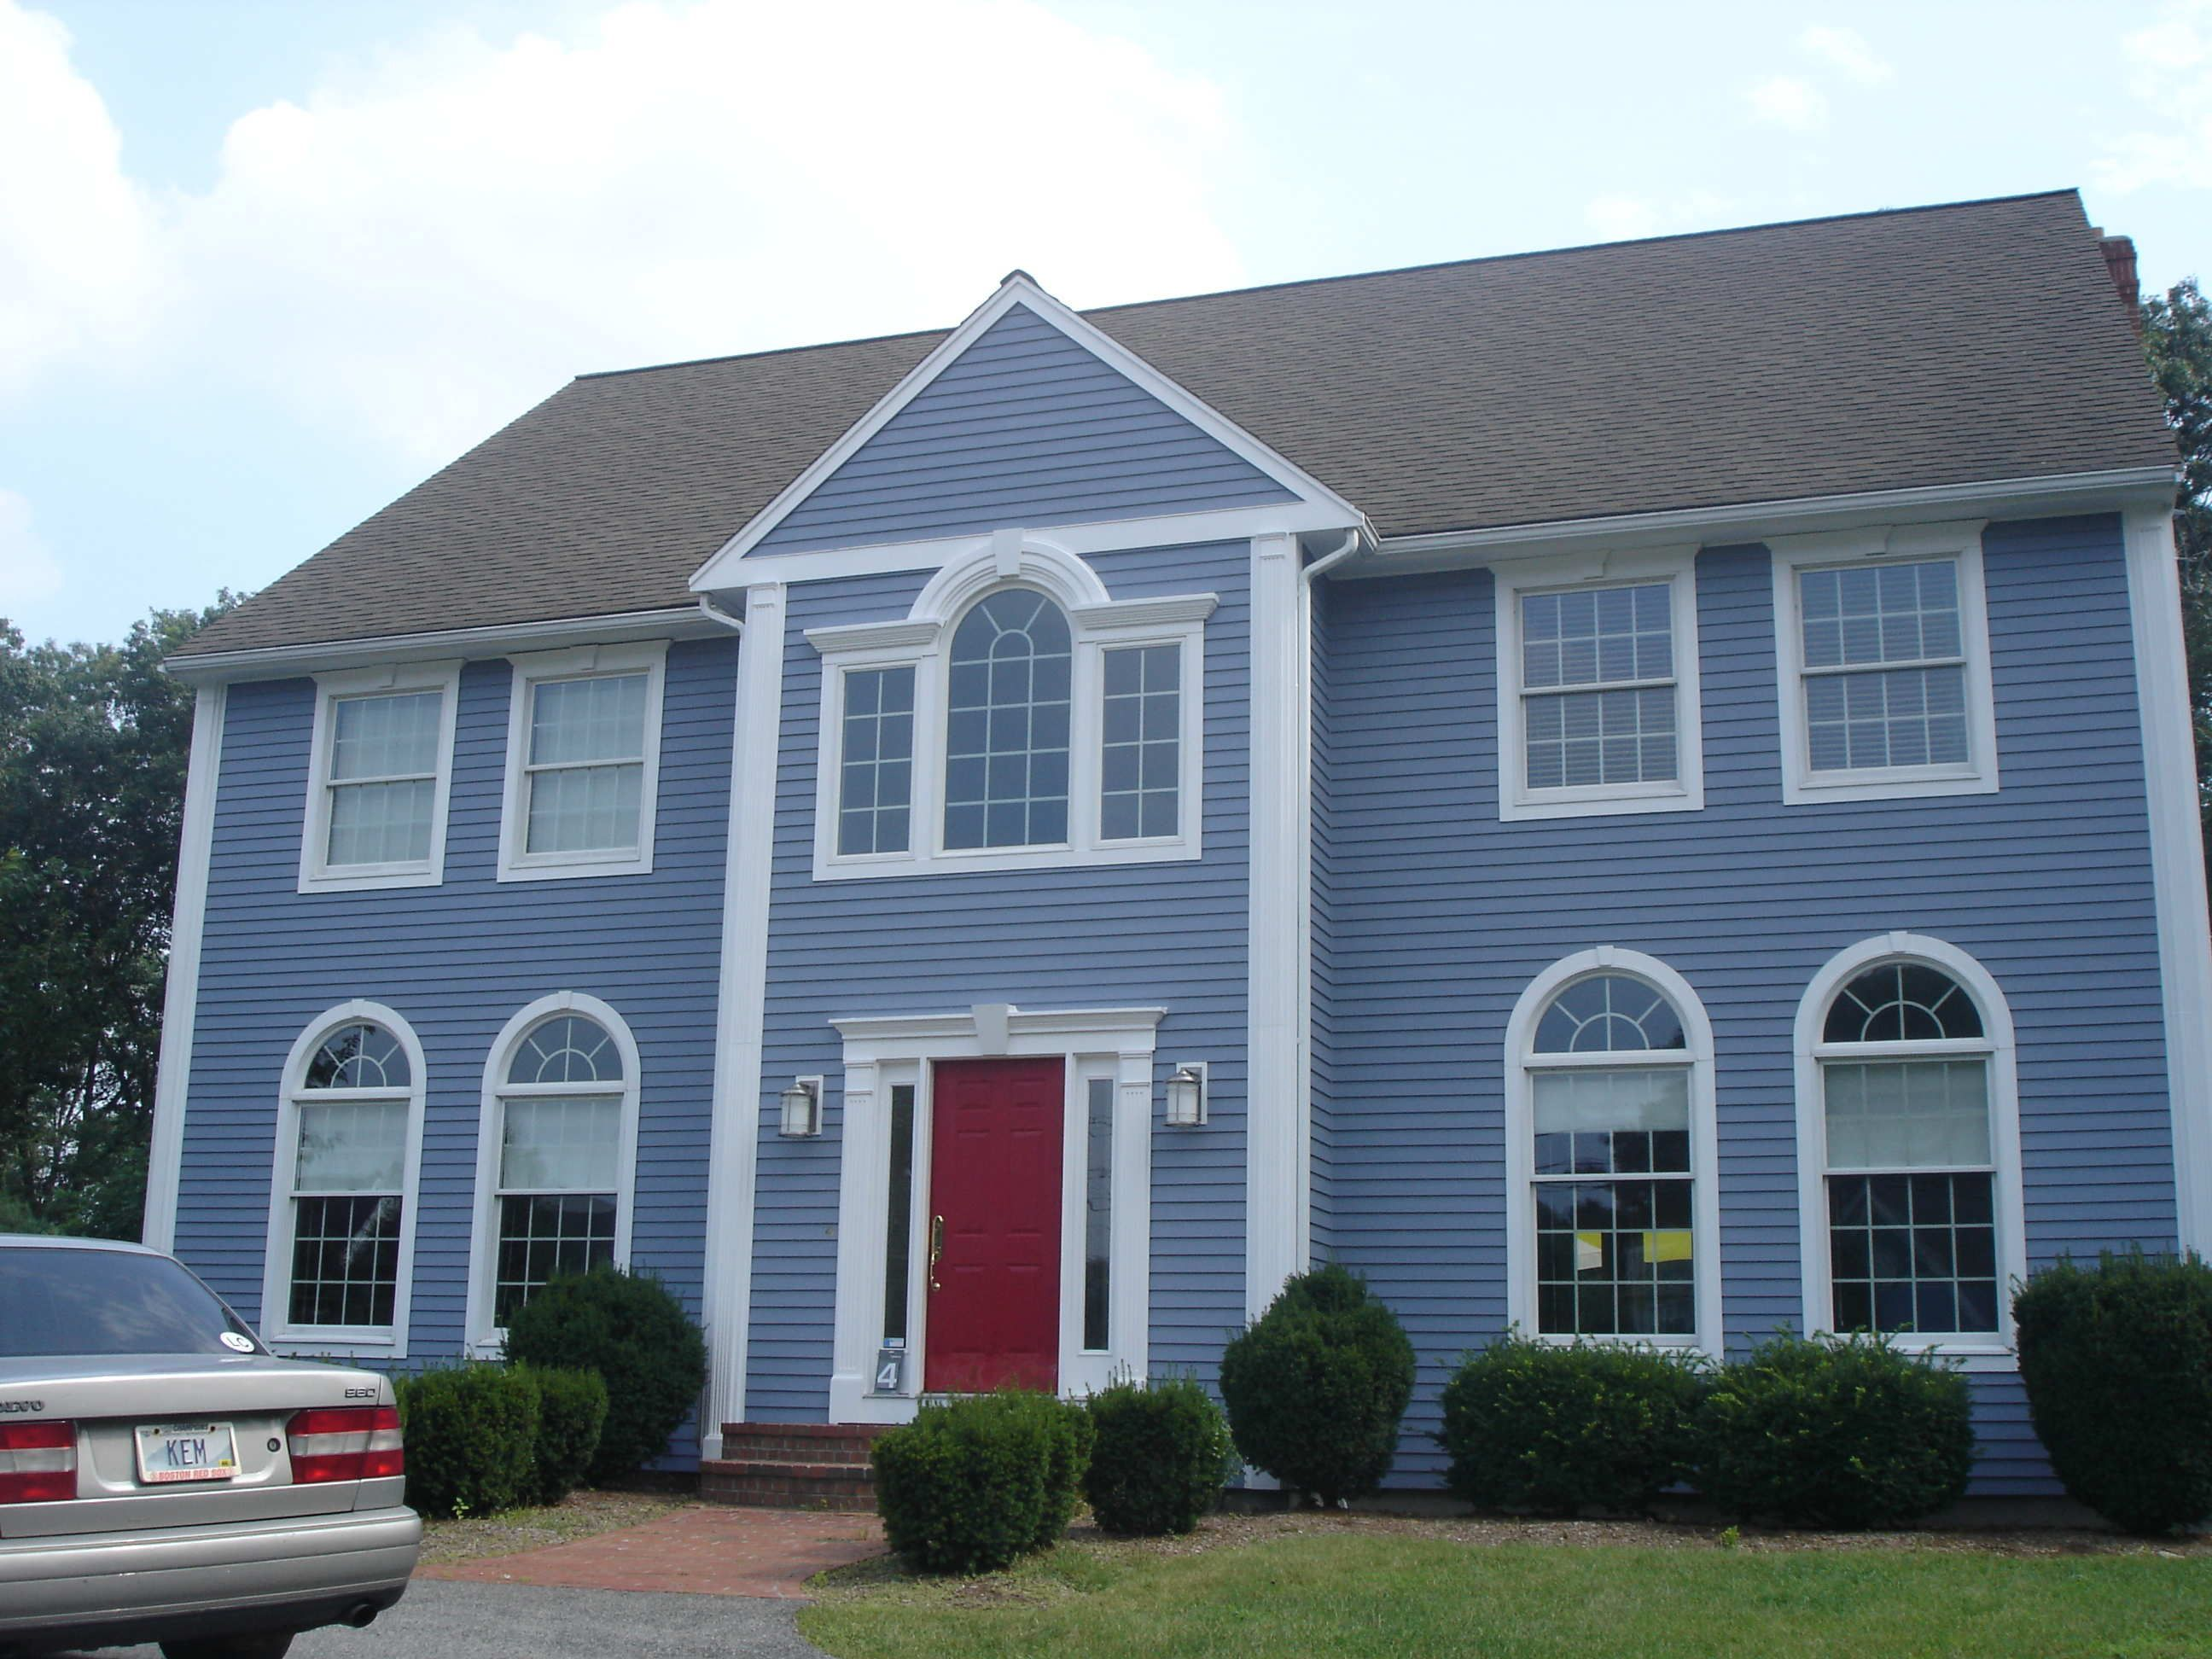 paint house exteriorBlue Exterior House Paint Colors At CertaPro Painters of